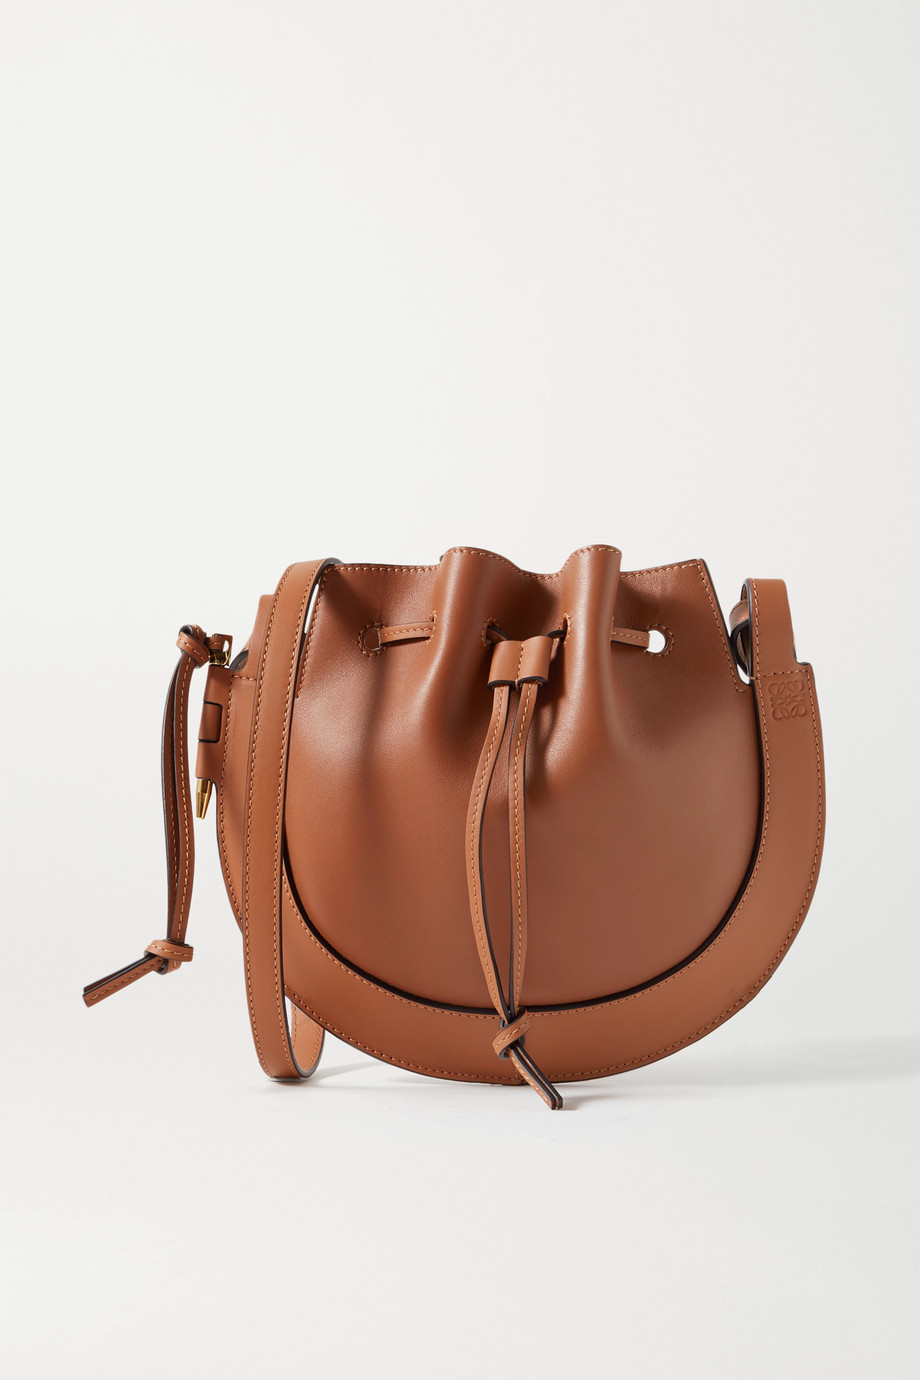 Loewe Horseshoe leather shoulder bag